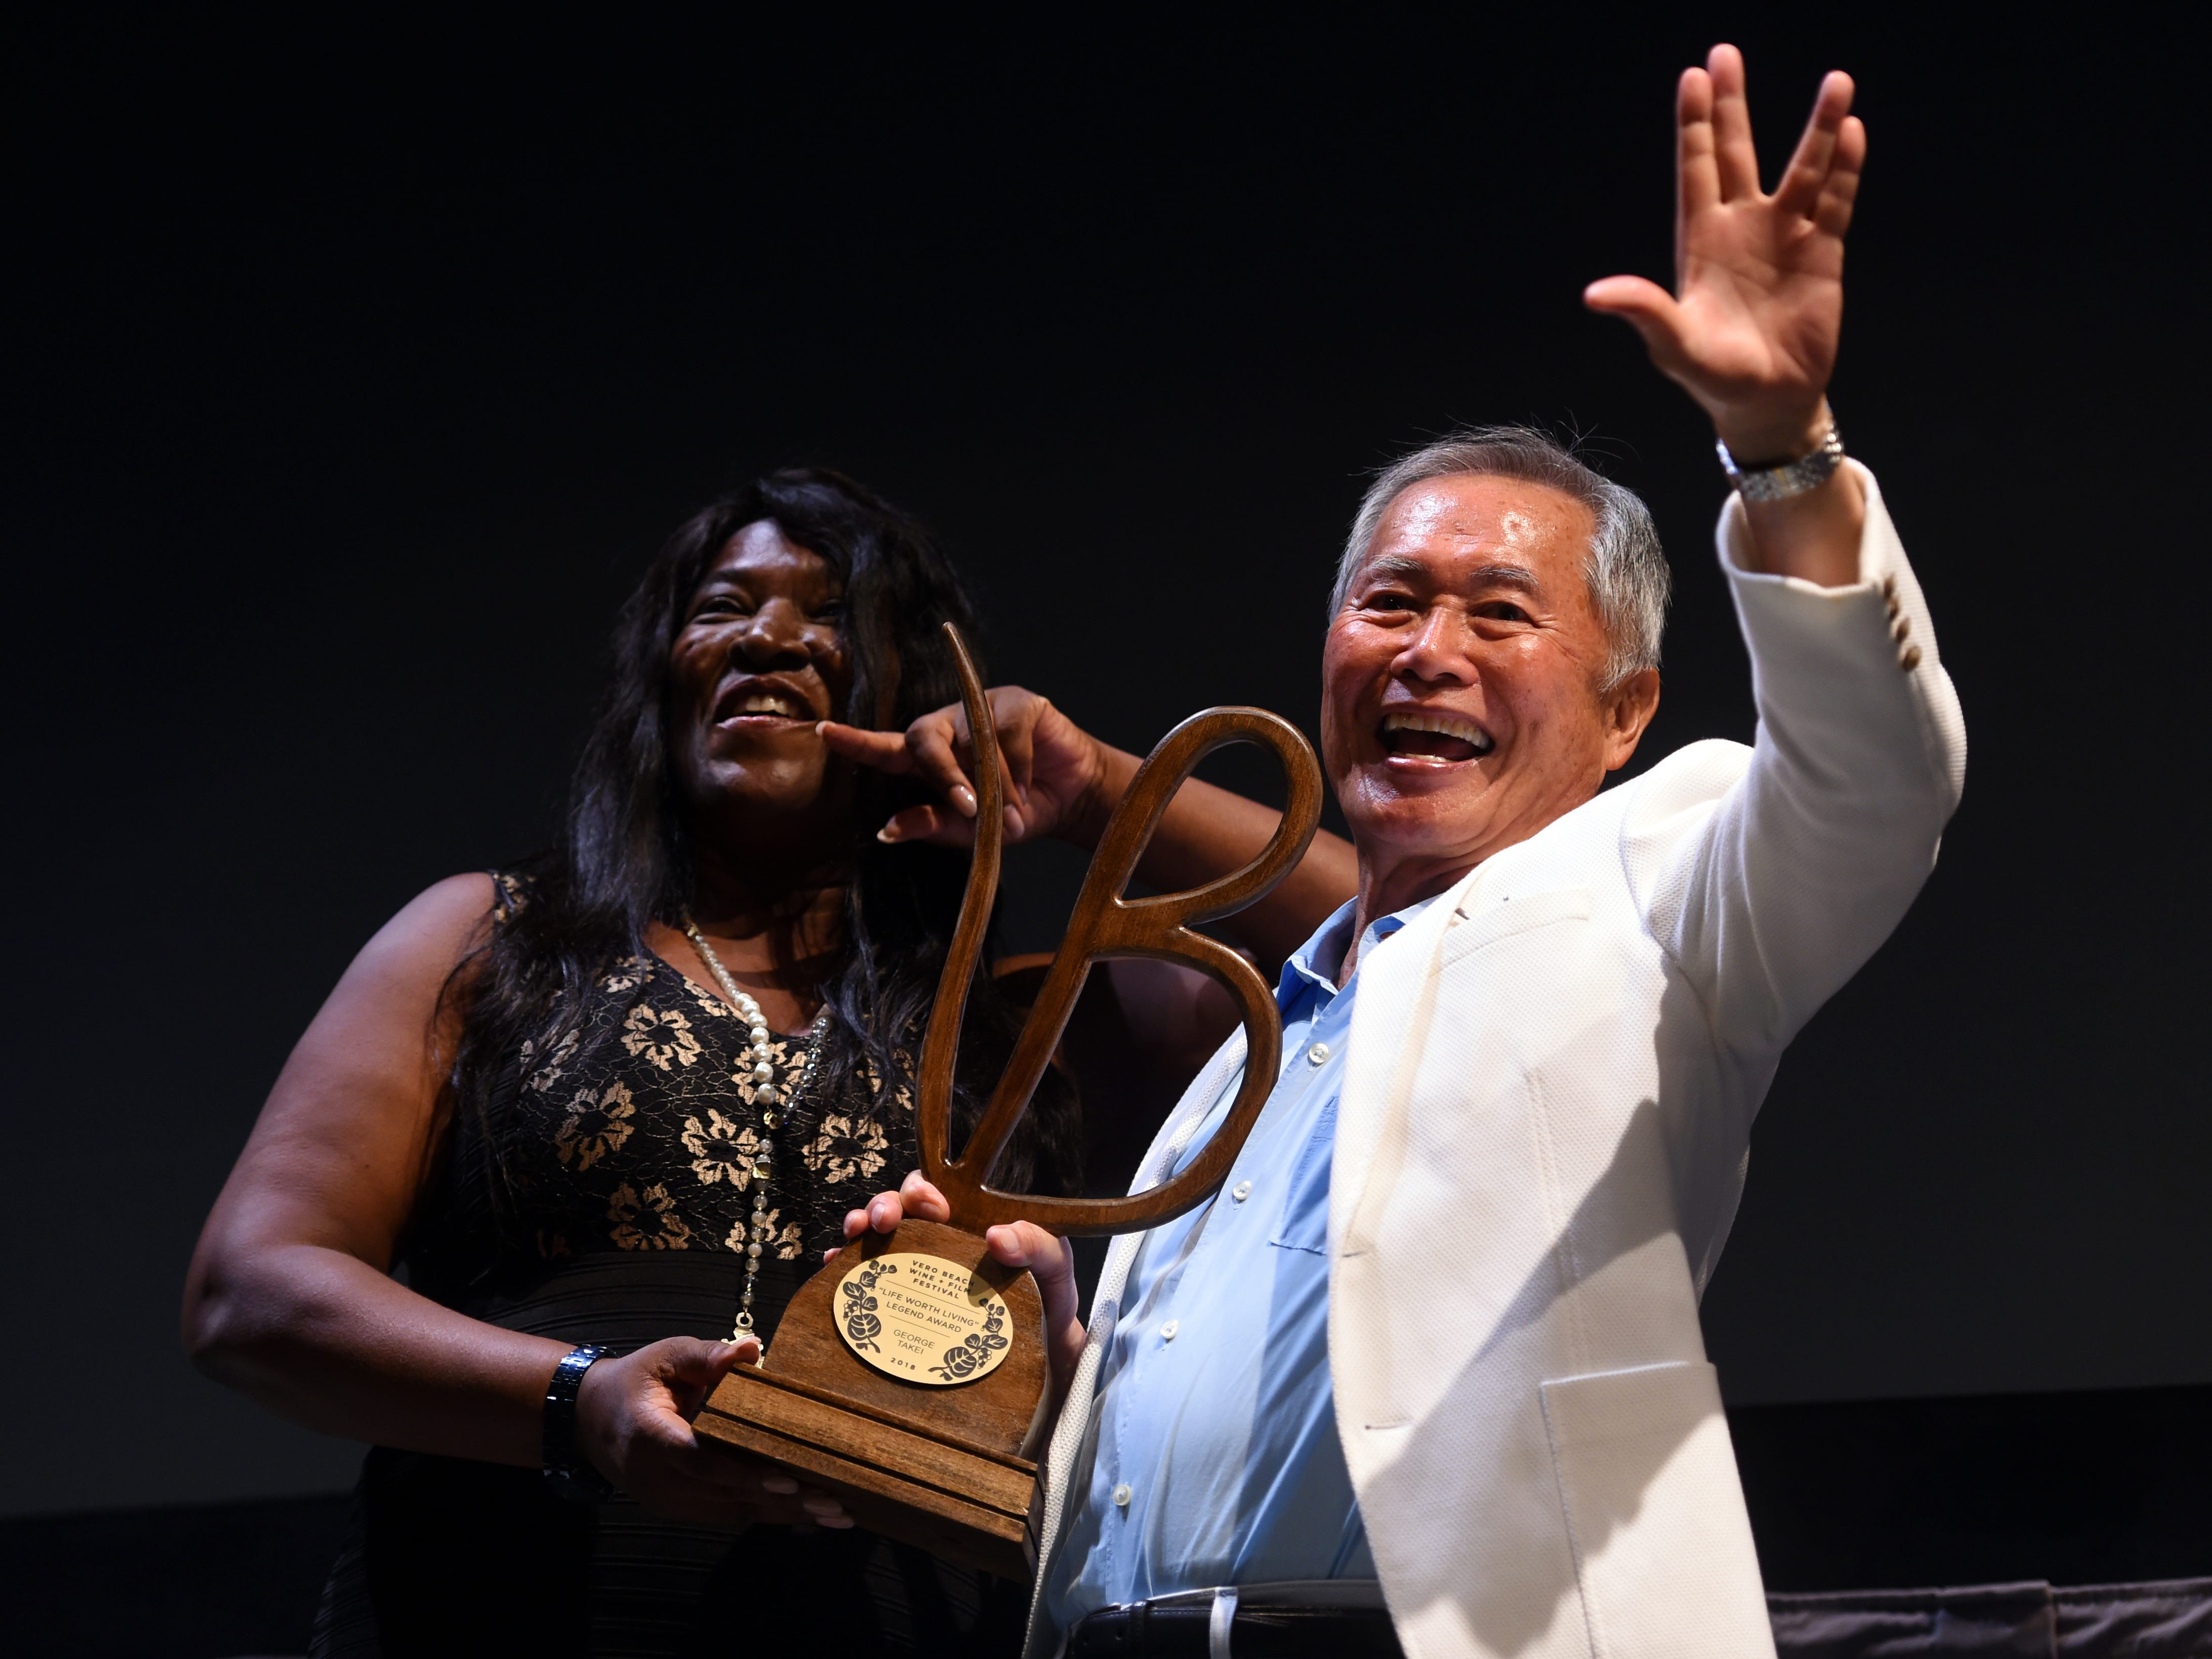 """Best known for his role of Sulu on the original Star Trek television series, stage and film actor George Takei waves to the crowd with a 'live long and prosper' sign on Friday, June 8, 2018 after receiving the Life Worth Living Legend Award from festival founder and executive director Jerusha Stewart at the 2018 Vero Beach Wine + Film Festival at the Riverside Theatre in Vero Beach. Takei spoke of his early years as a young actor, working with prominent film actors and his advocacy for the LGBTQ community. """"You got to have the strength, even after many rejections, to spring back and be able to approach that next interview with all the enthusiasm, the freshness and determination to do the best you can,"""" Takei said when asked what advice he would give to aspiring actors. """"Hang in there, be strong."""""""